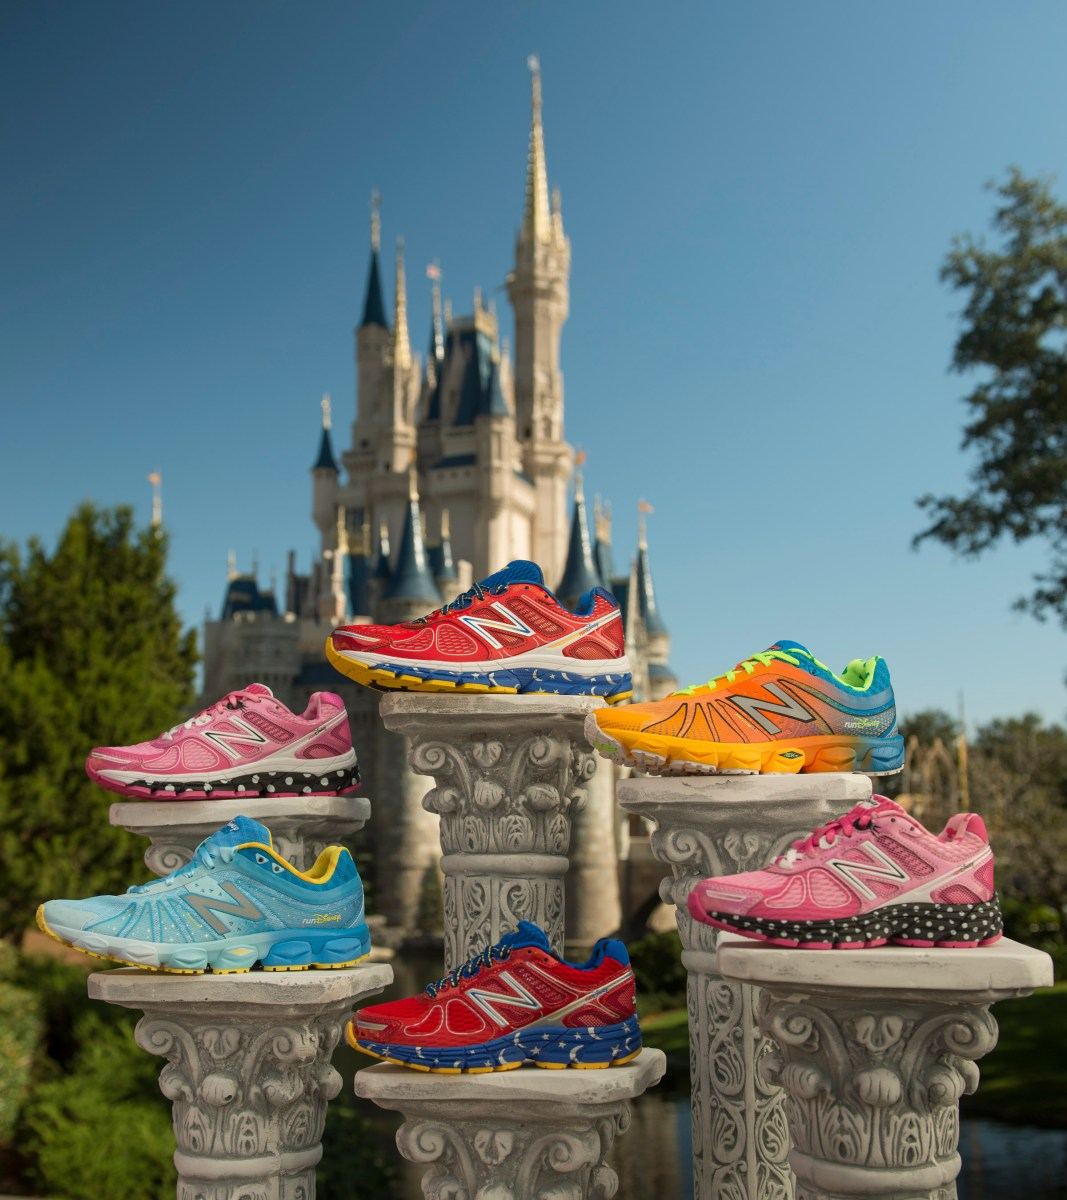 How To Buy New Balance Disney Shoes At Princess Half